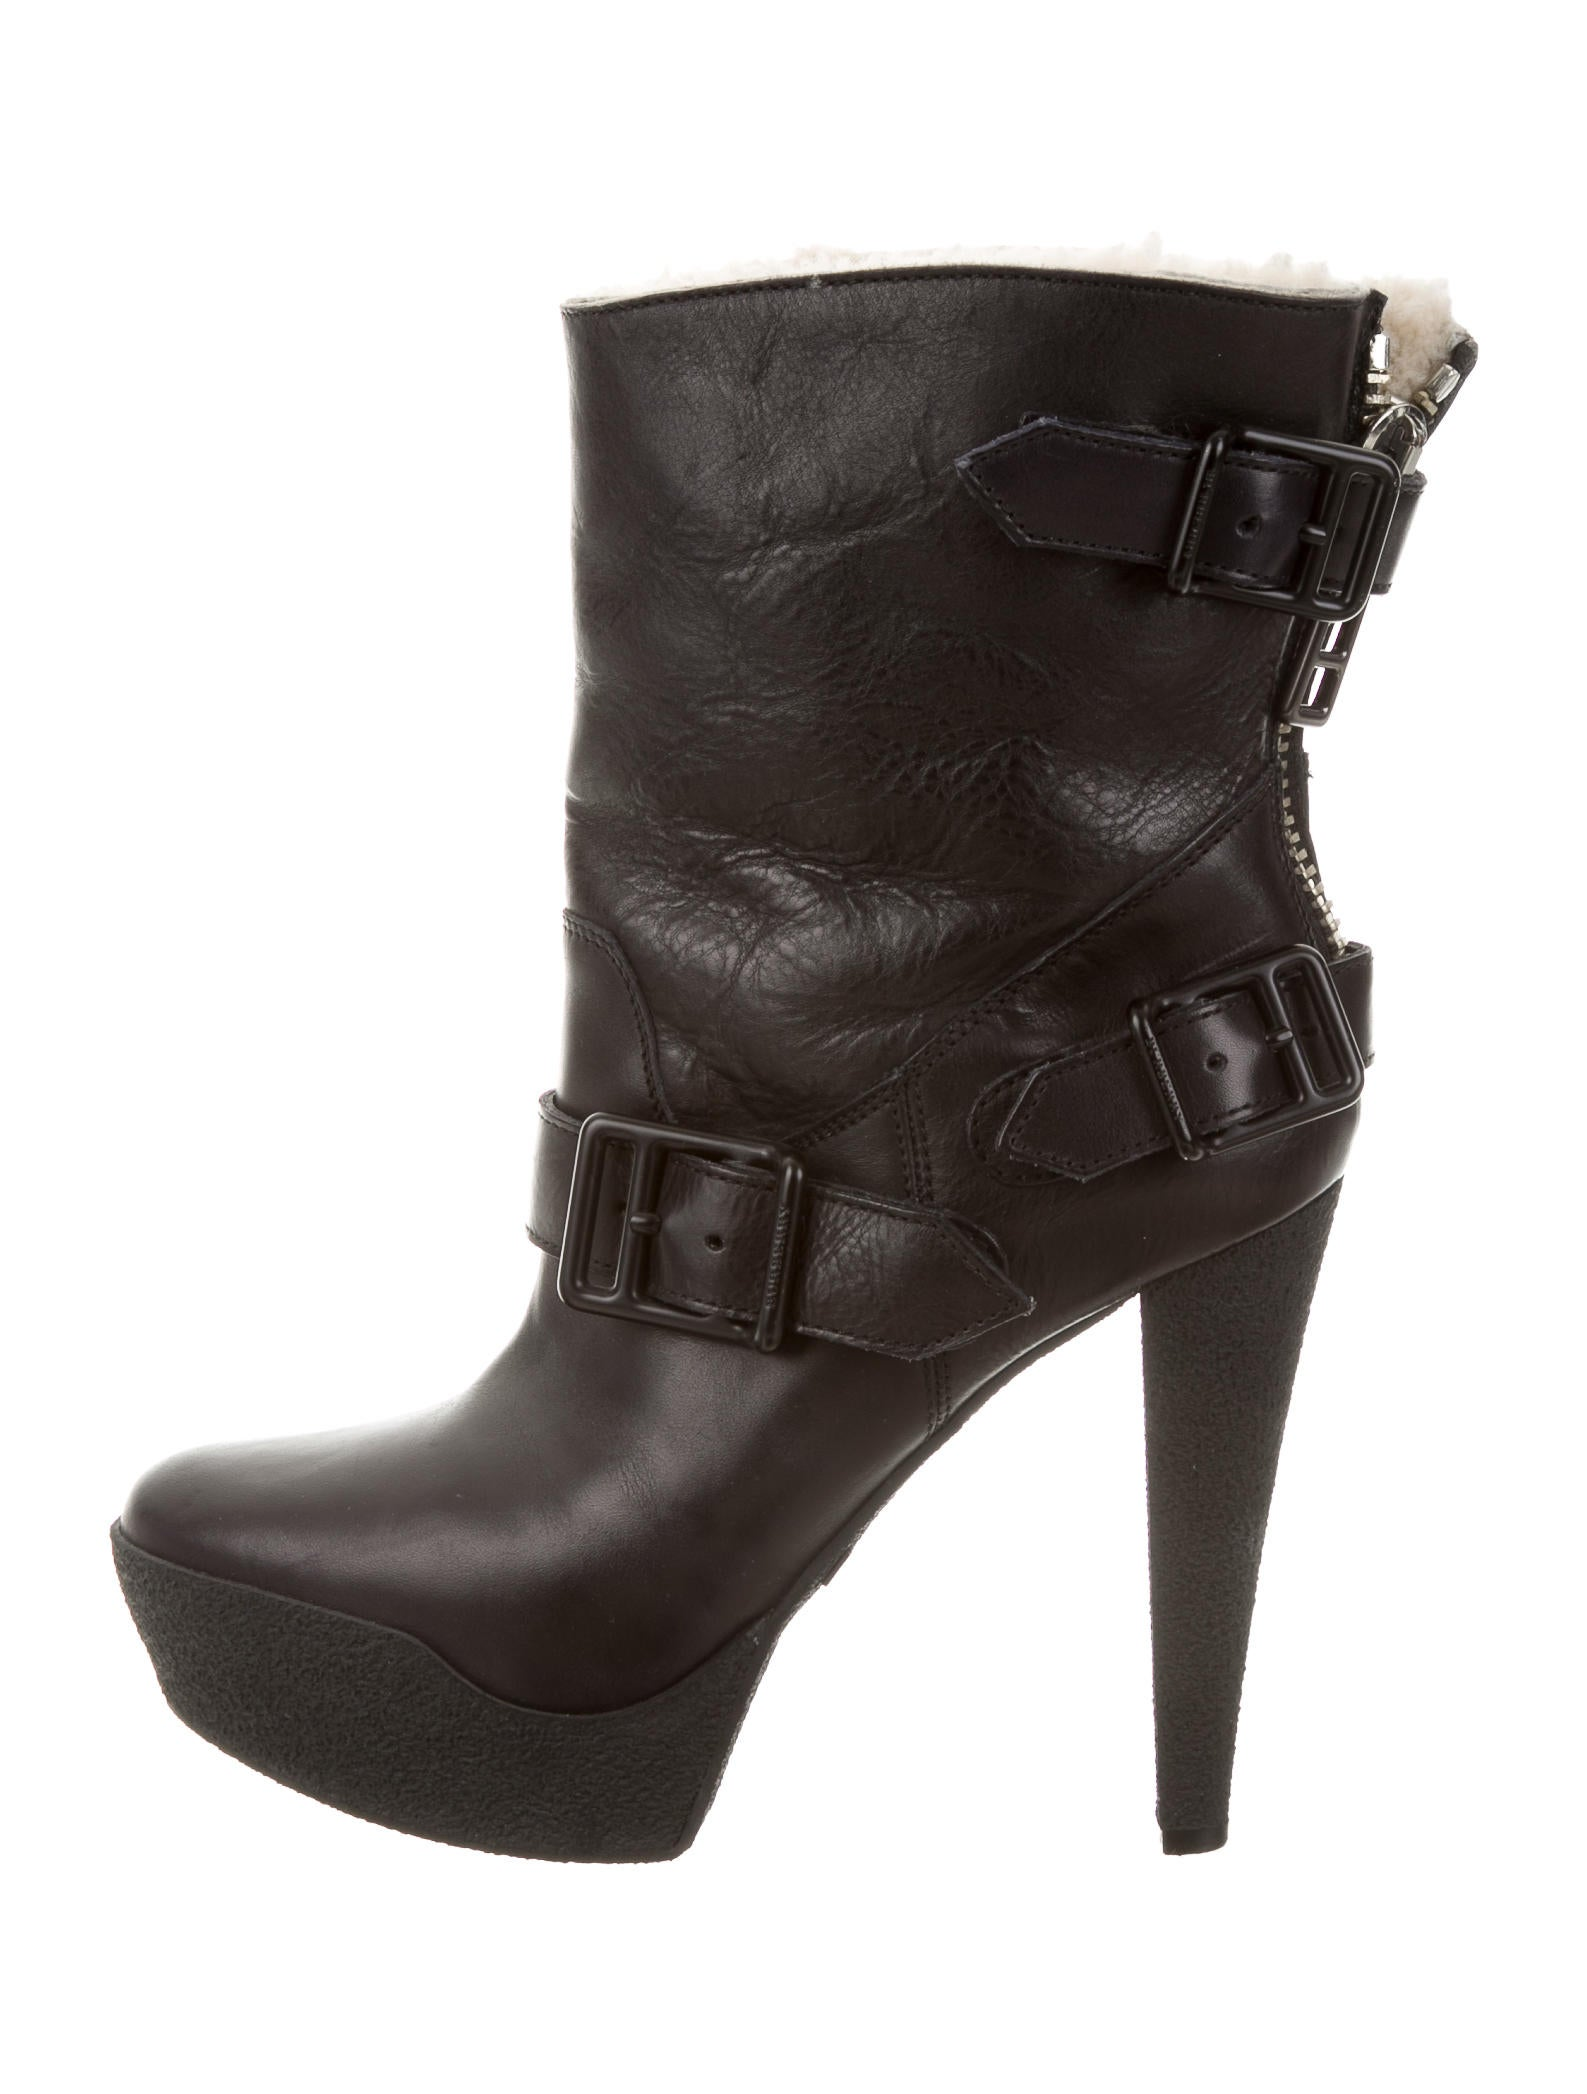 burberry shearling ankle boots shoes bur61296 the